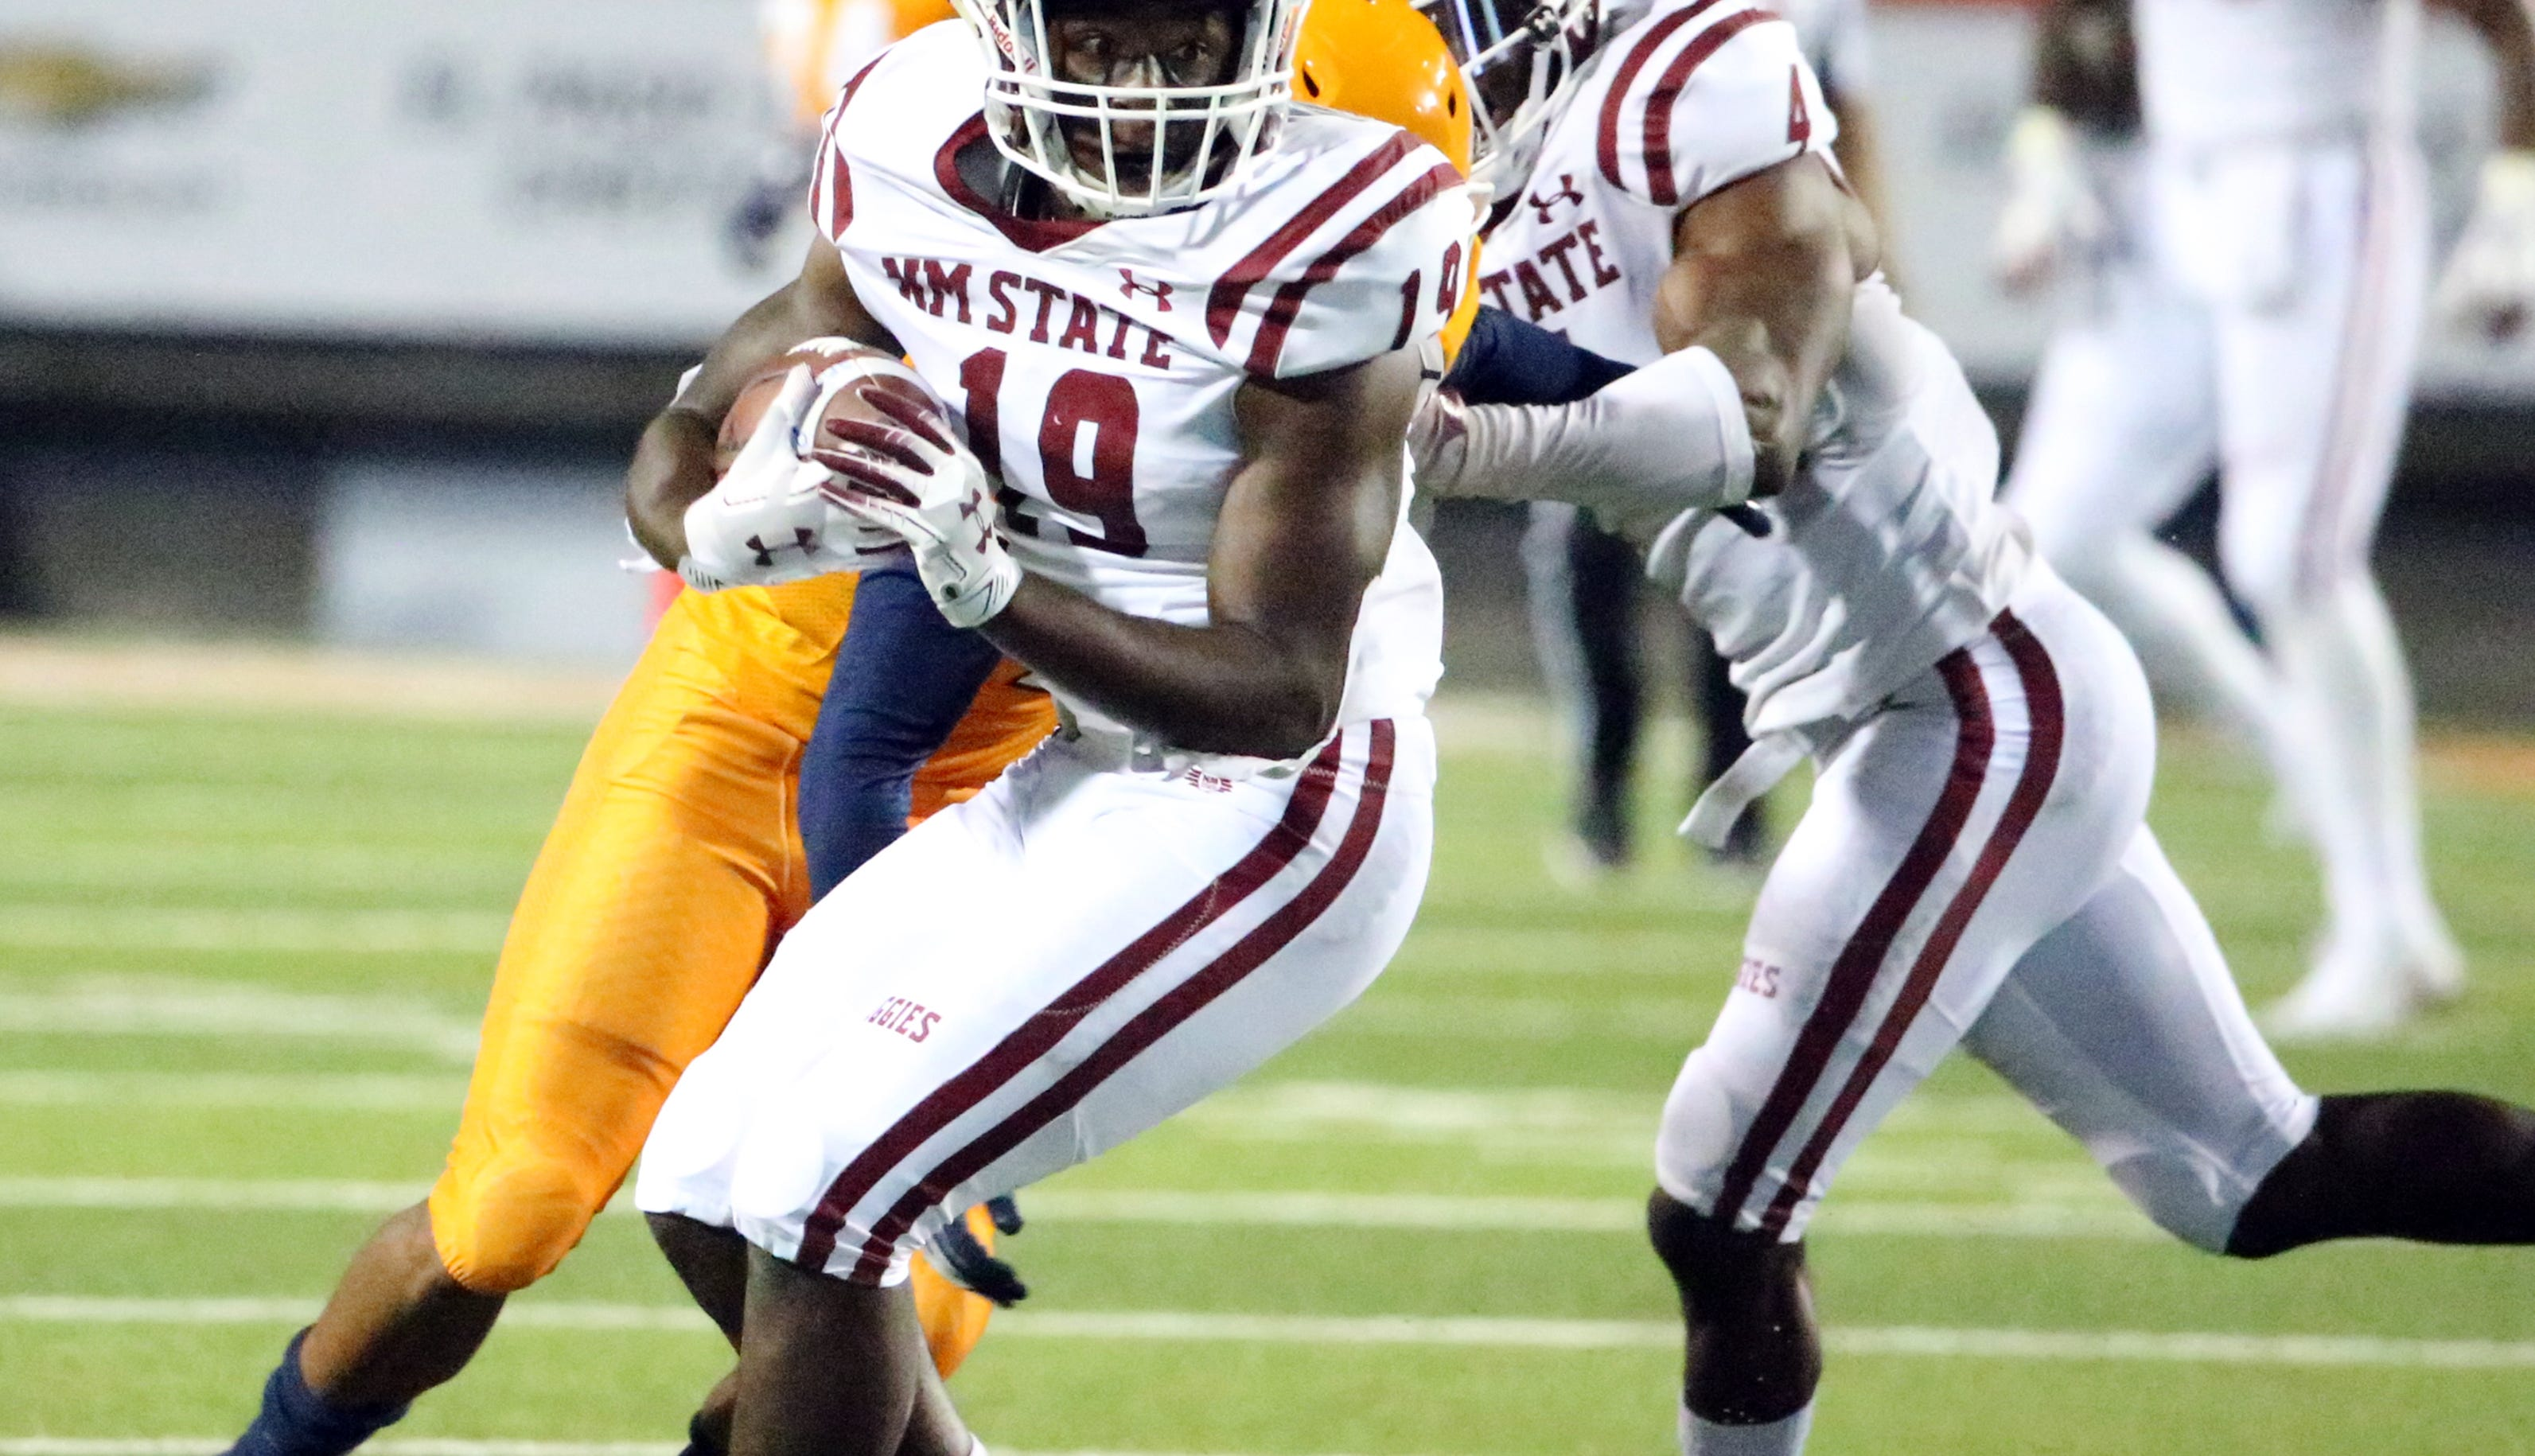 NMSU defensive back Austin Perkins, 19, comes down with an interception with less than a minute left in the game to end UTEP's efforts to even the score Saturday night in the Sun Bowl Stadium. The Aggies prevailed in the I-10 Rivalry 27-20.